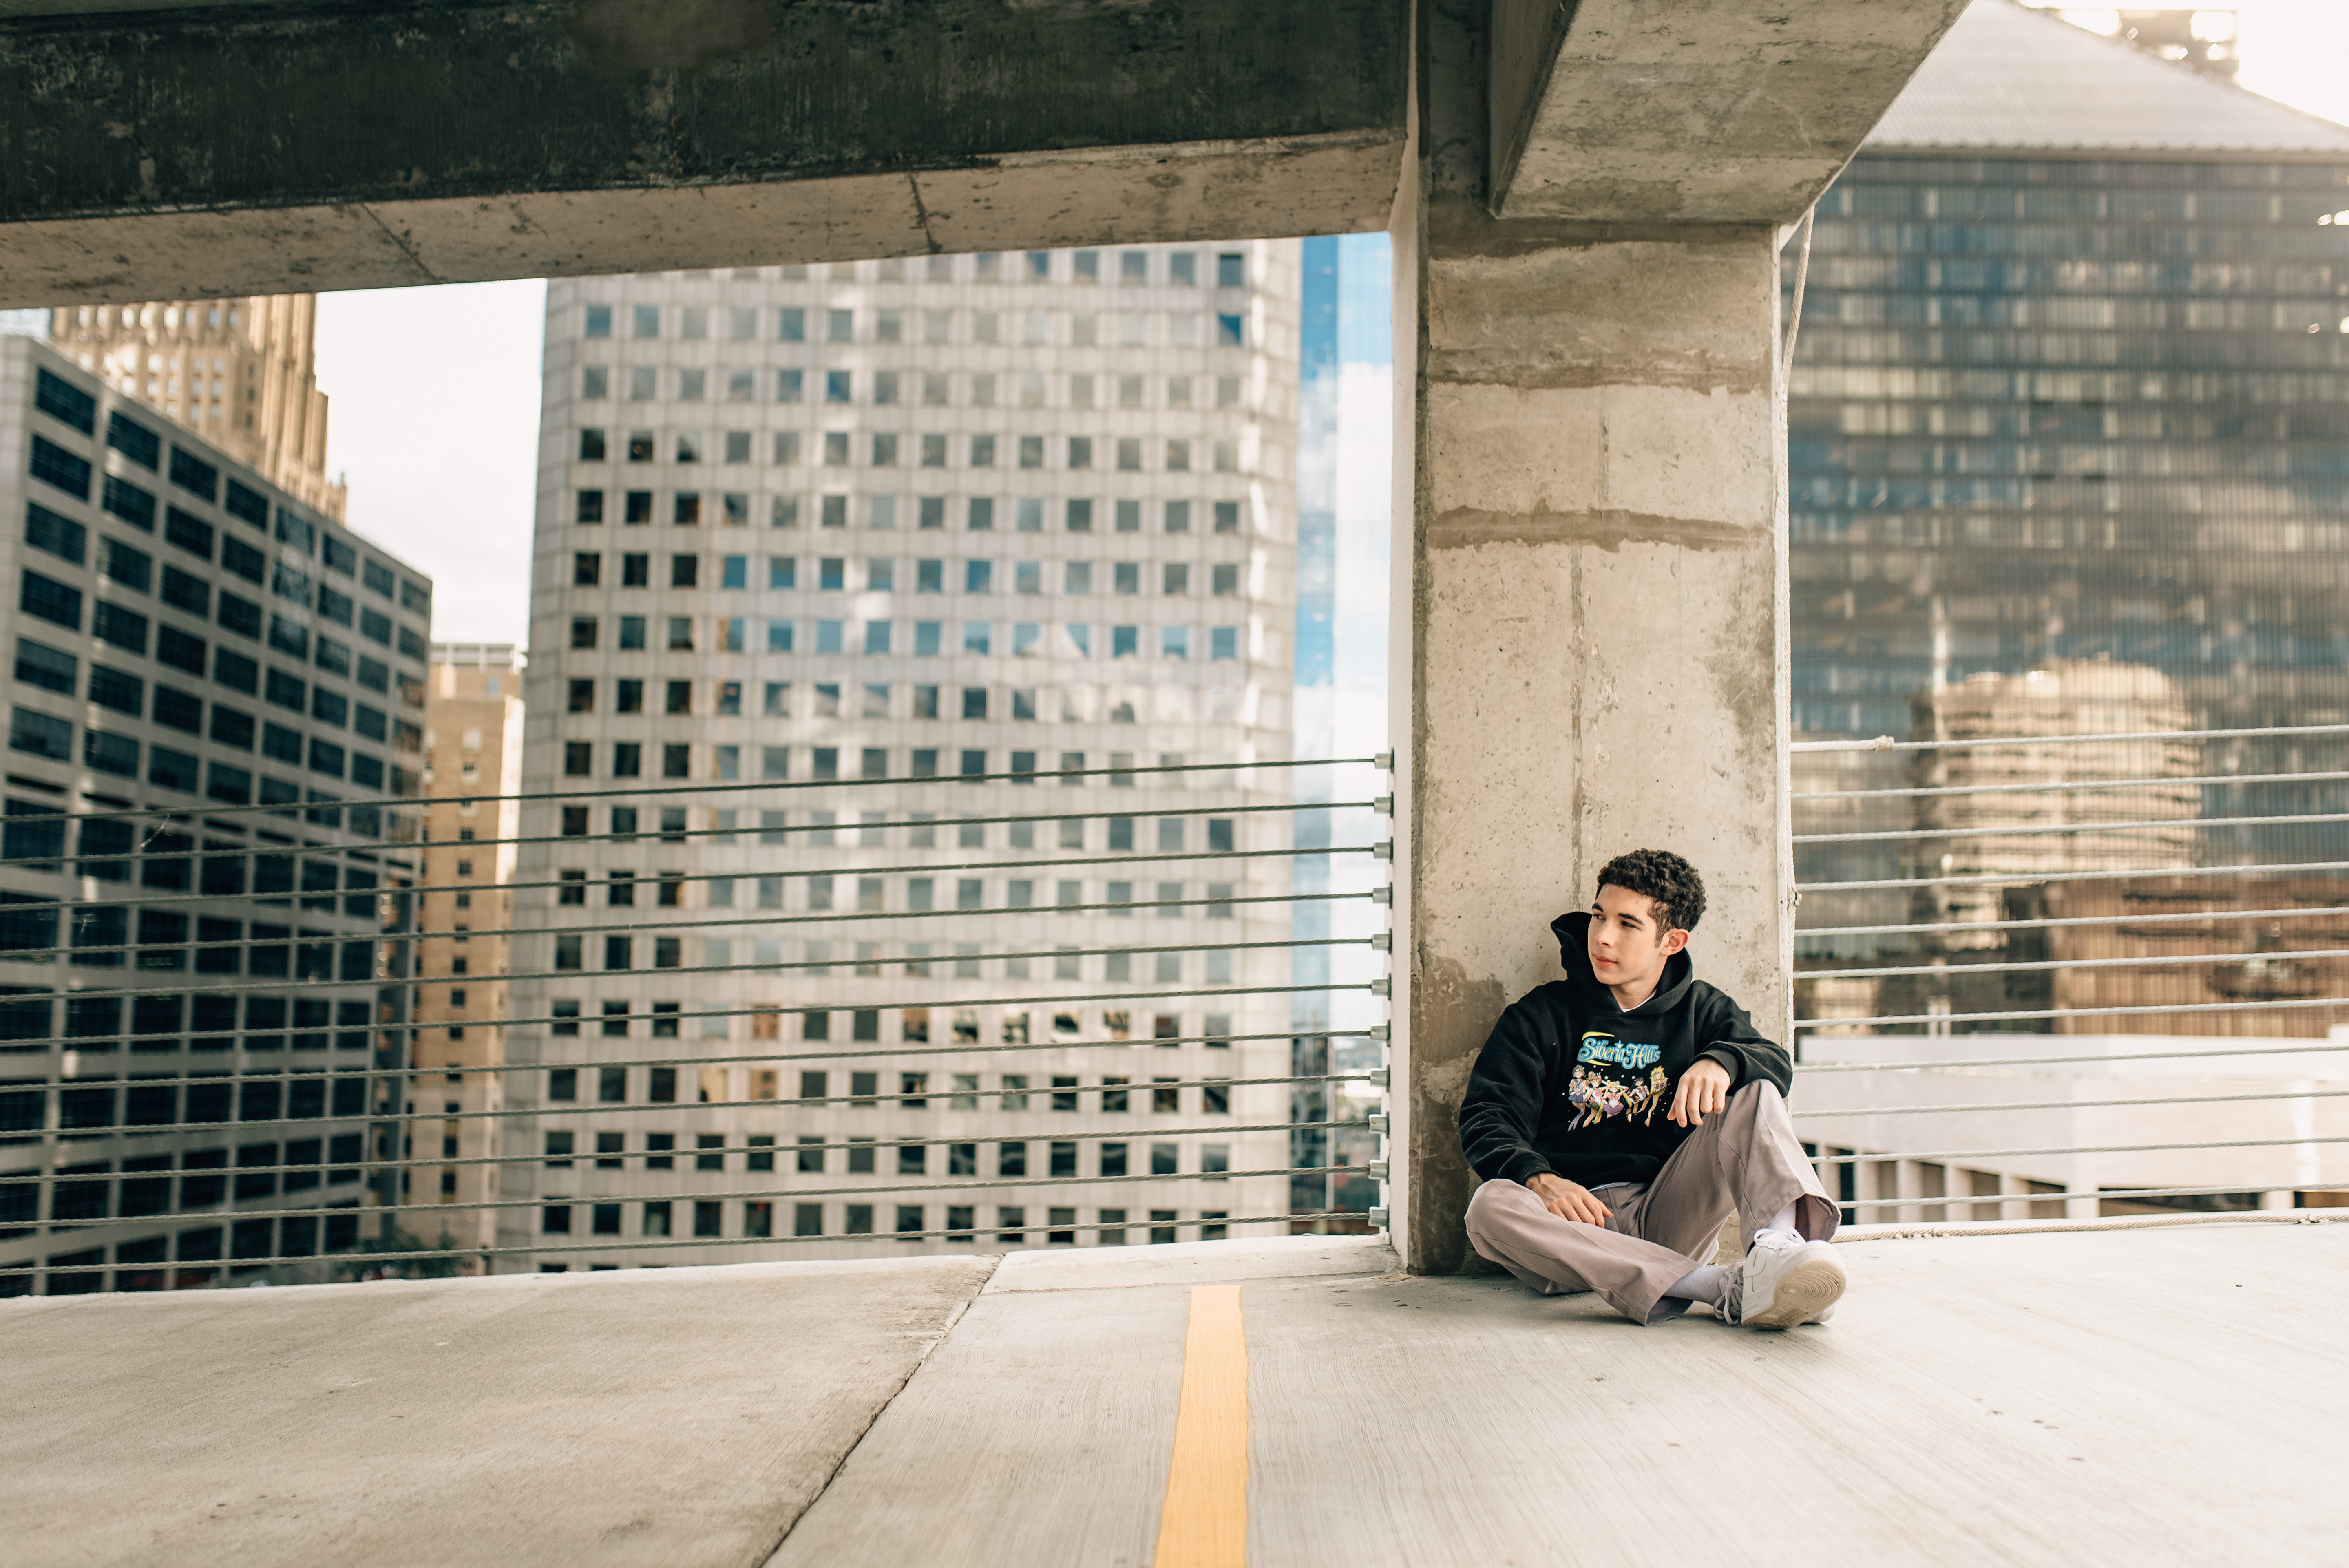 guy sitting in a parking lot with the city behind him